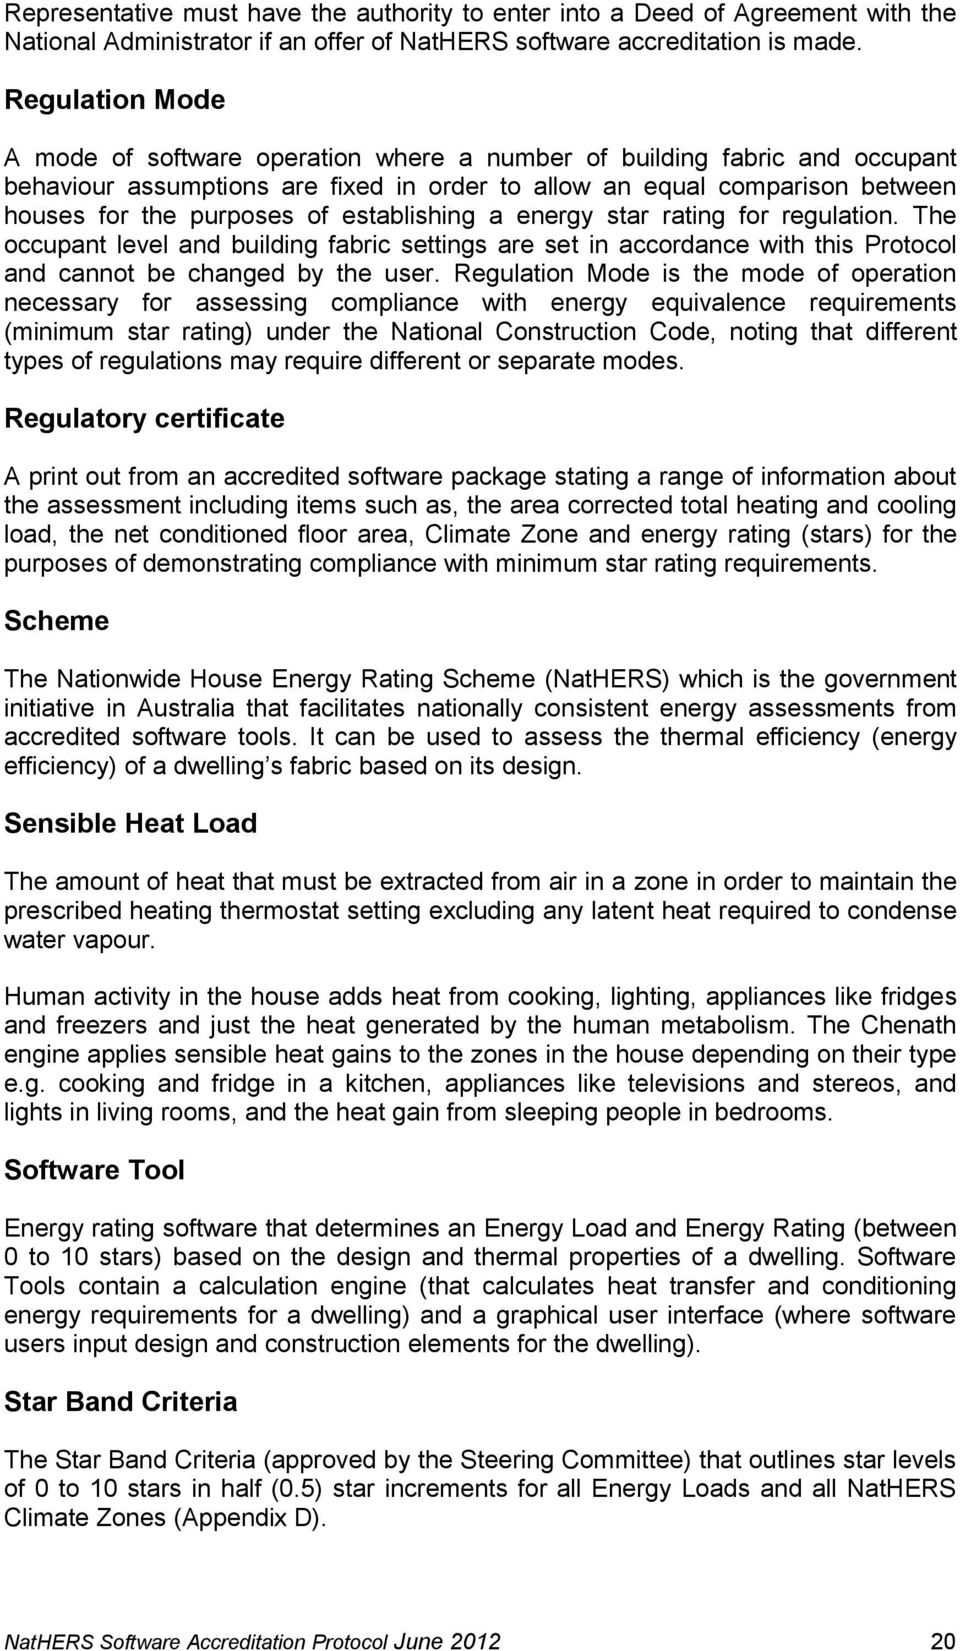 NATIONWIDE HOUSE ENERGY RATING SCHEME (NatHERS) SOFTWARE